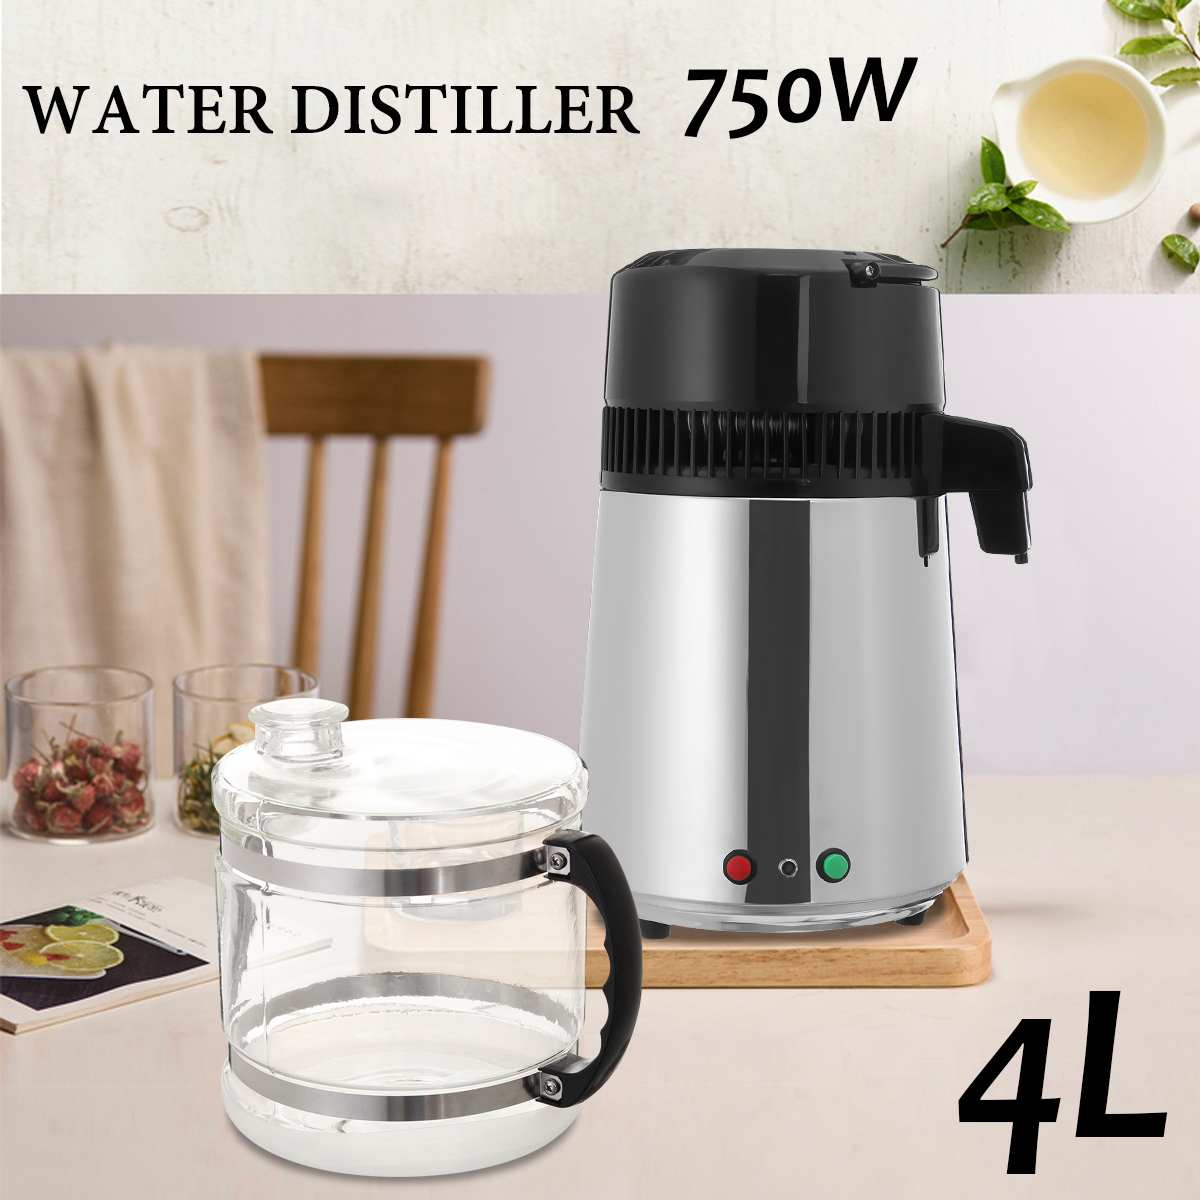 Stainless Steel Distilled Water Machine Portable Two-button Household Water Filter 4L With Over-temperature Insurance Function